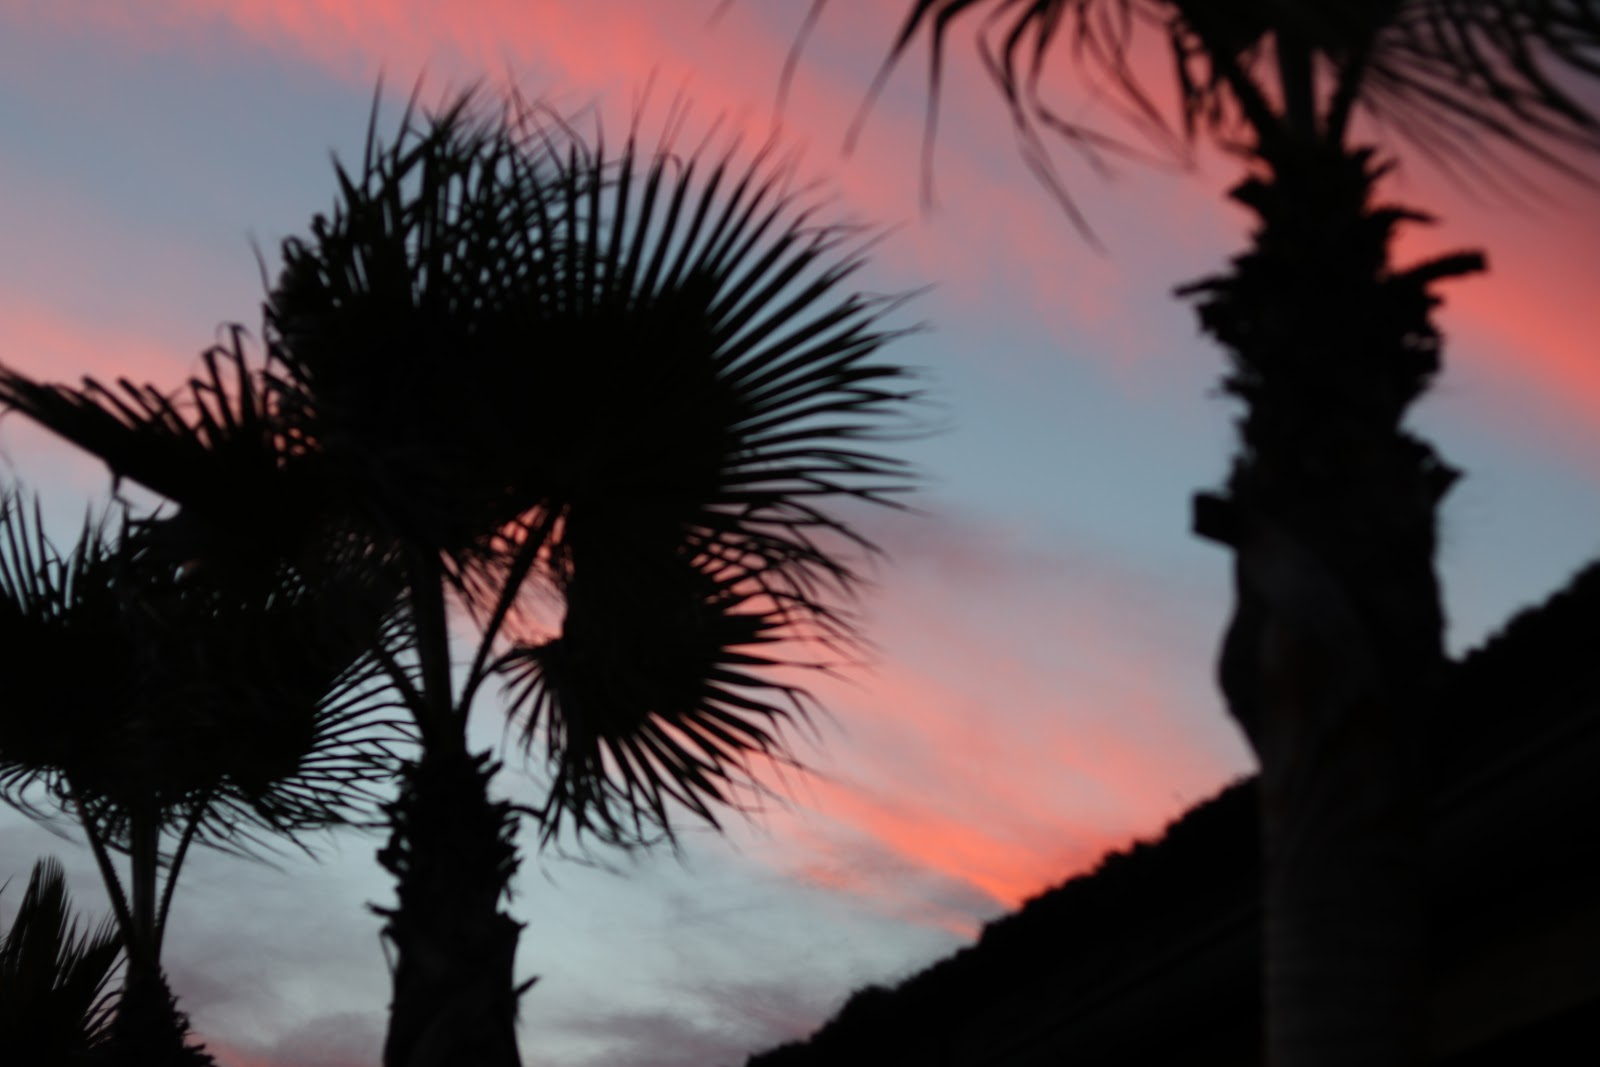 Sunset against Palm Trees at Trocadero in Sotogrande, Spain